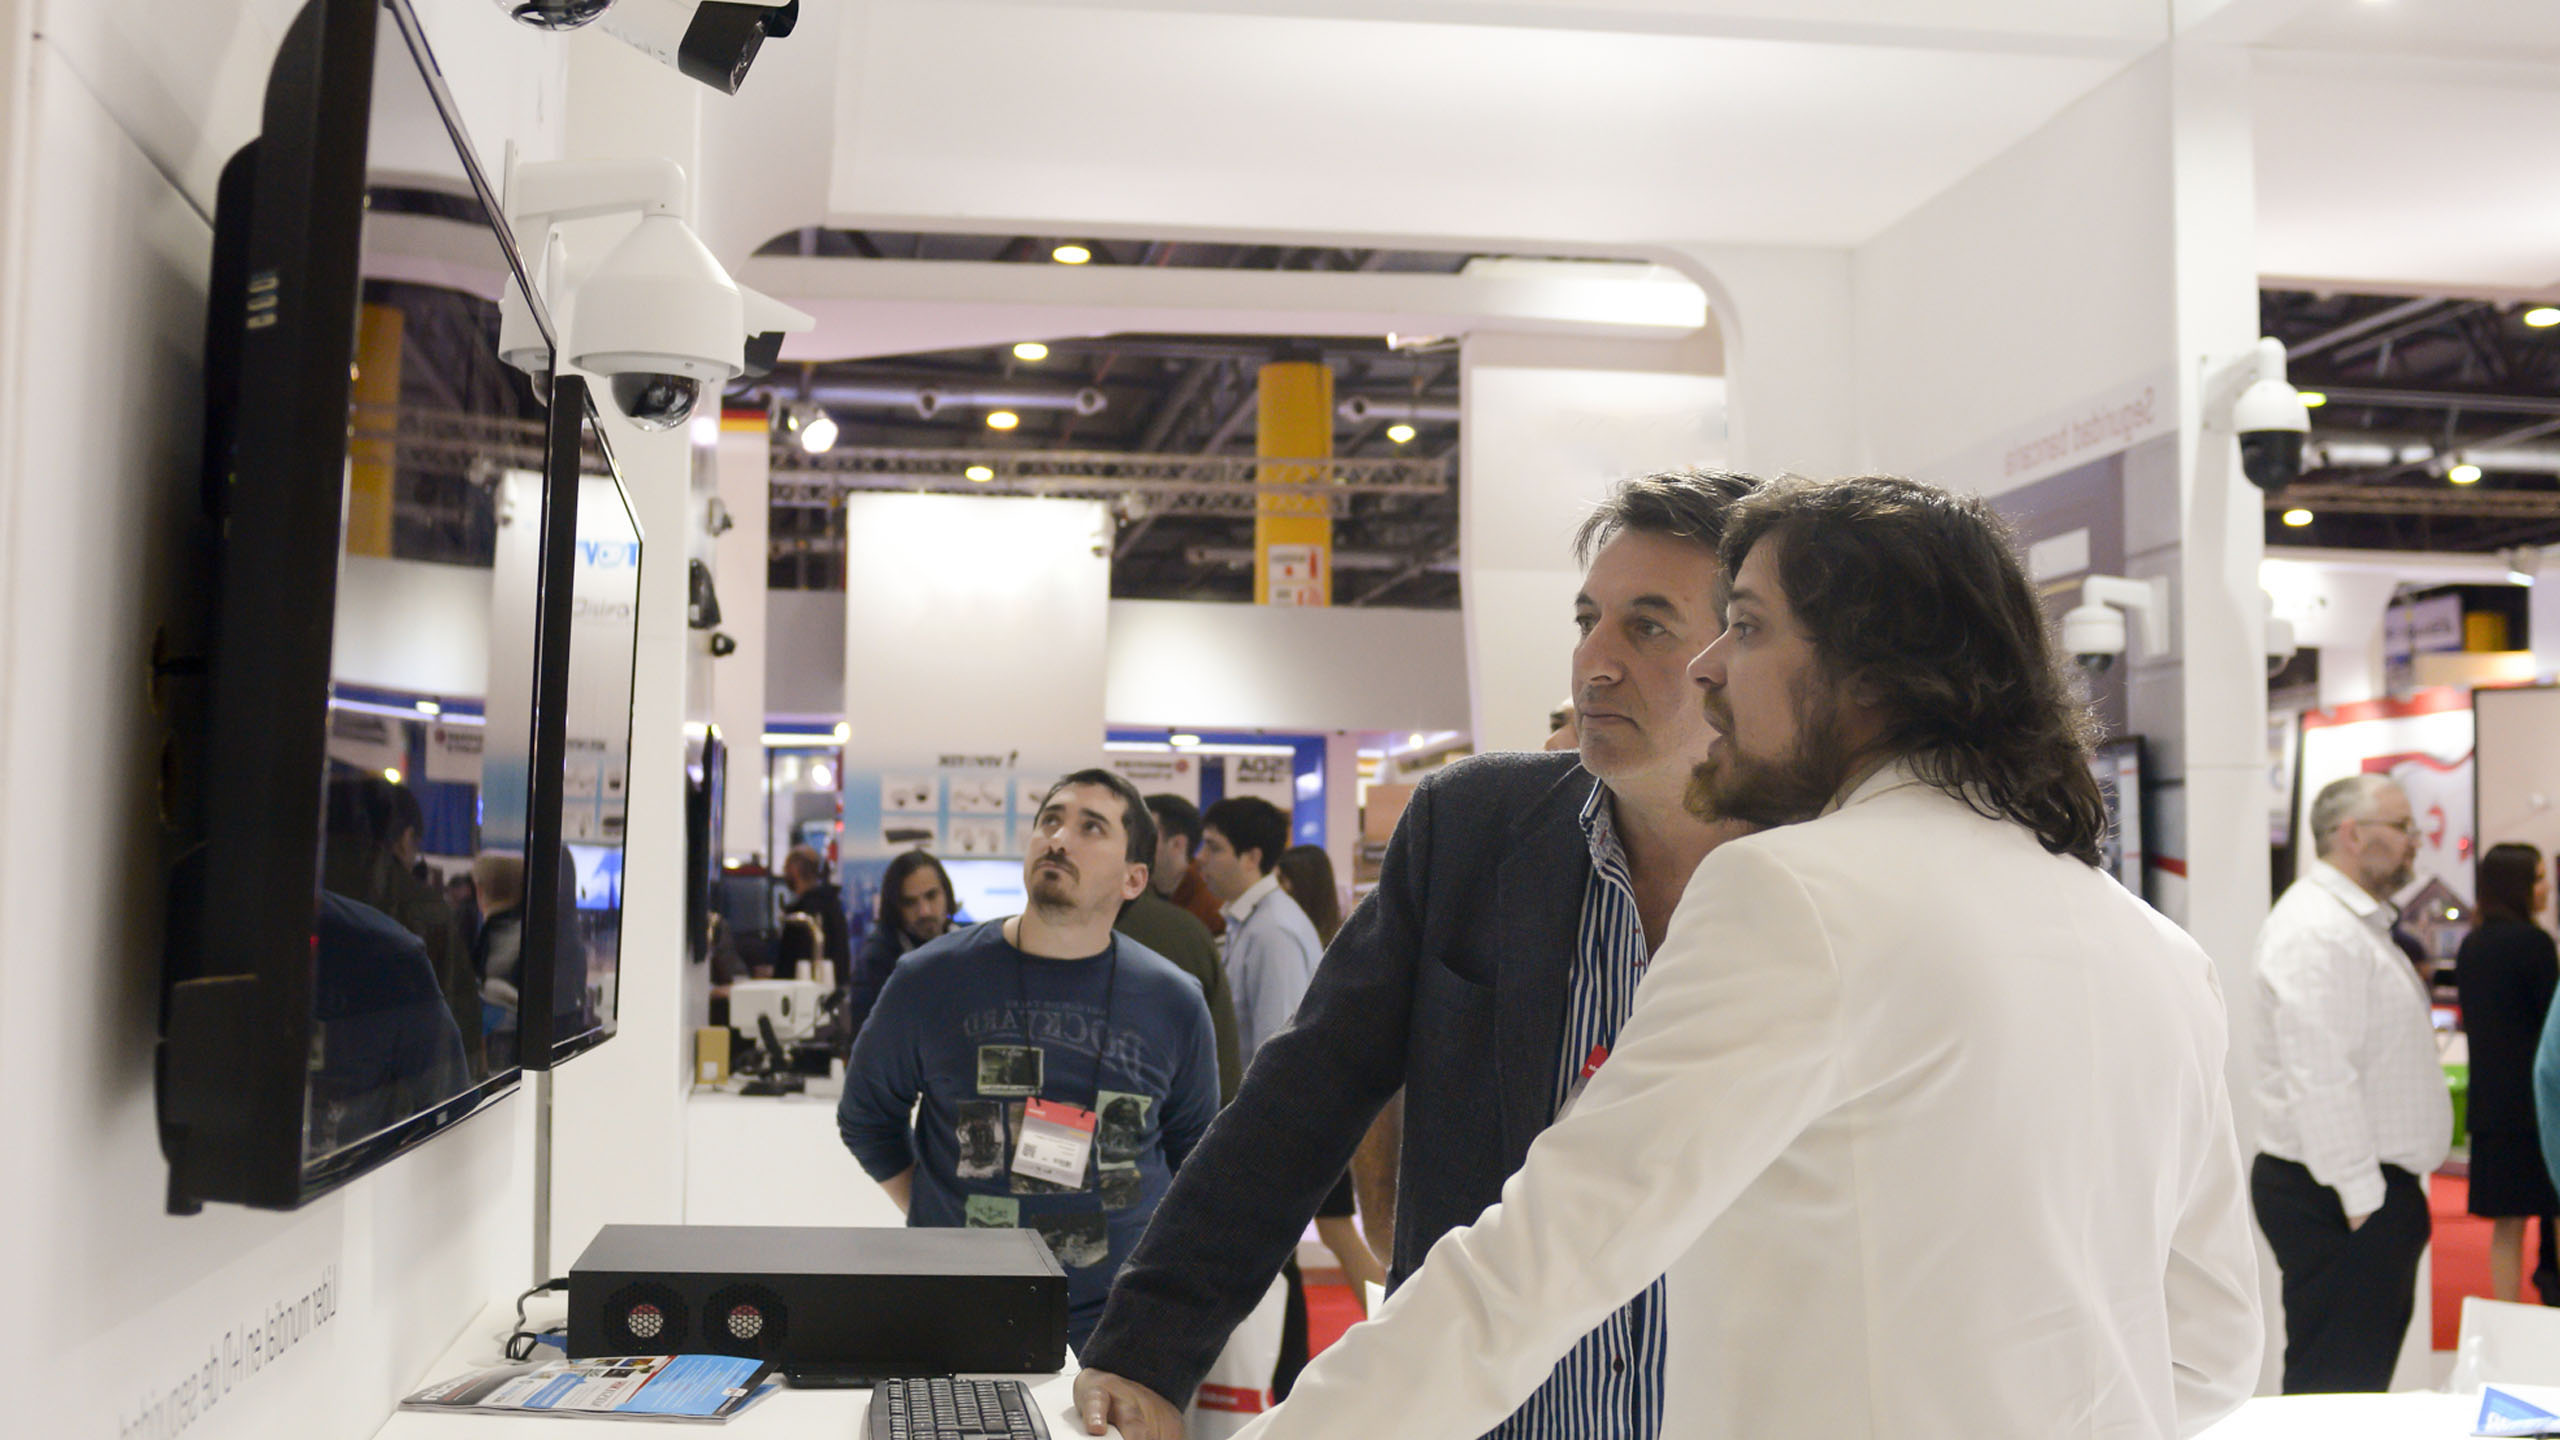 Intersec Buenos Aires: Facts and figures